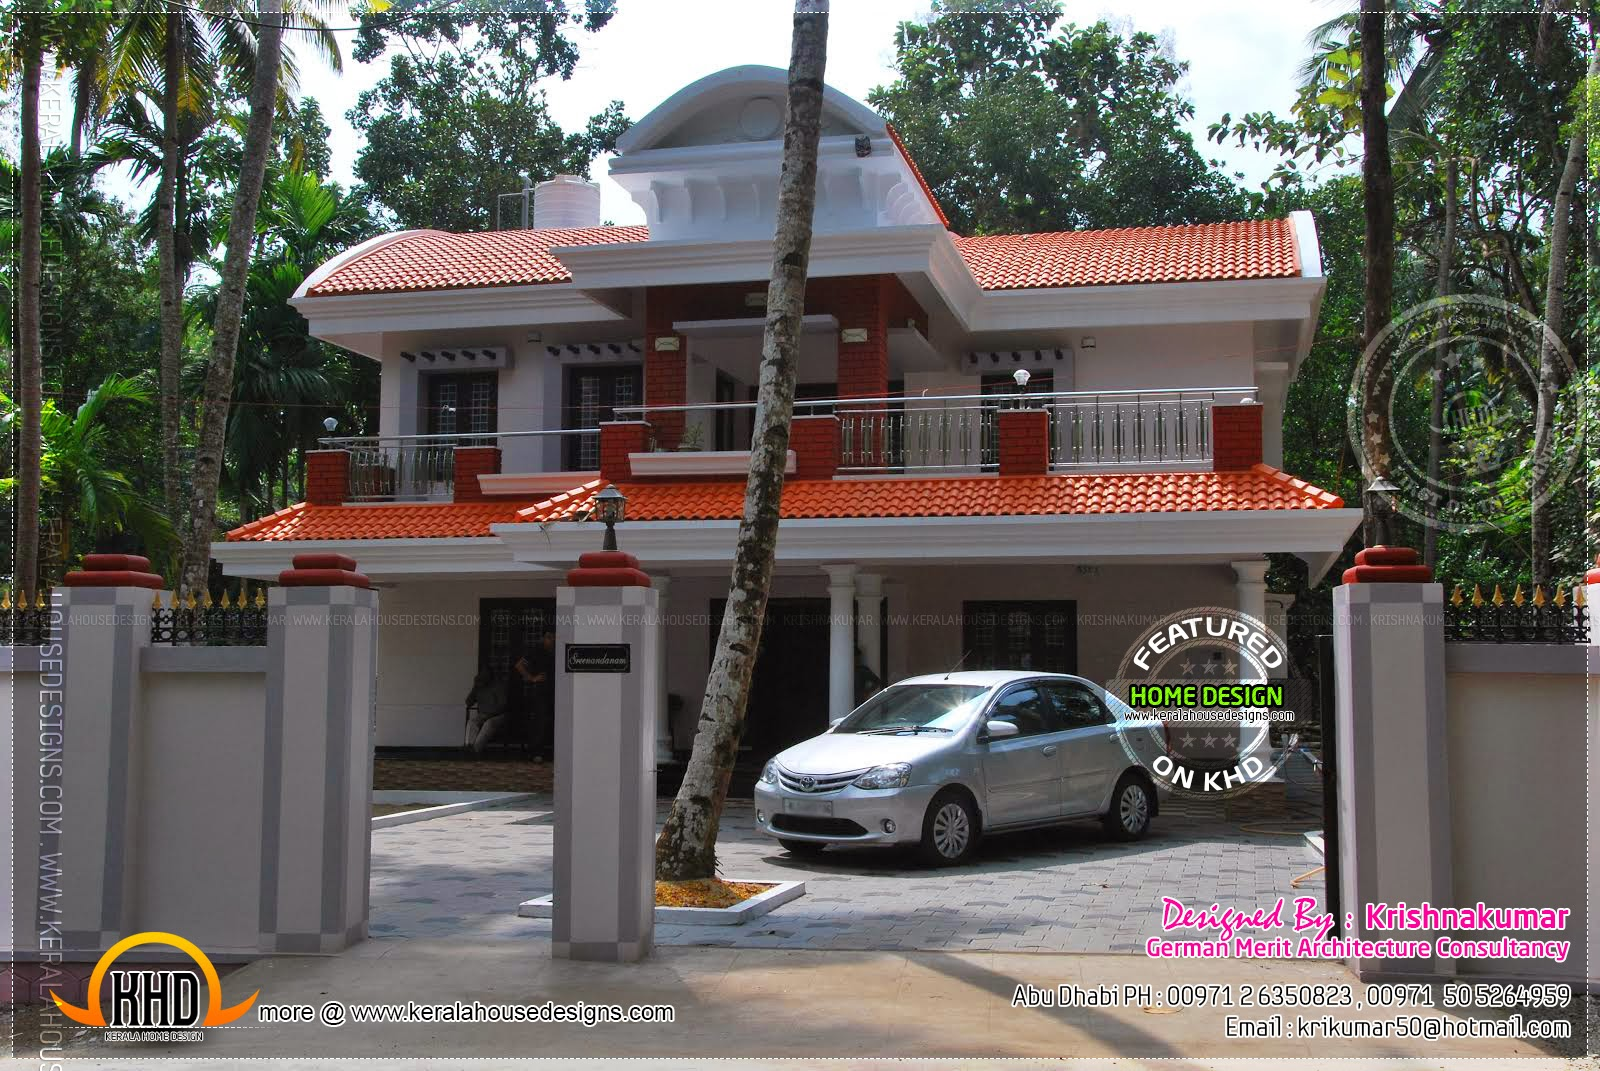 February 2014 kerala home design and floor plans for Kerala home designs and estimated price